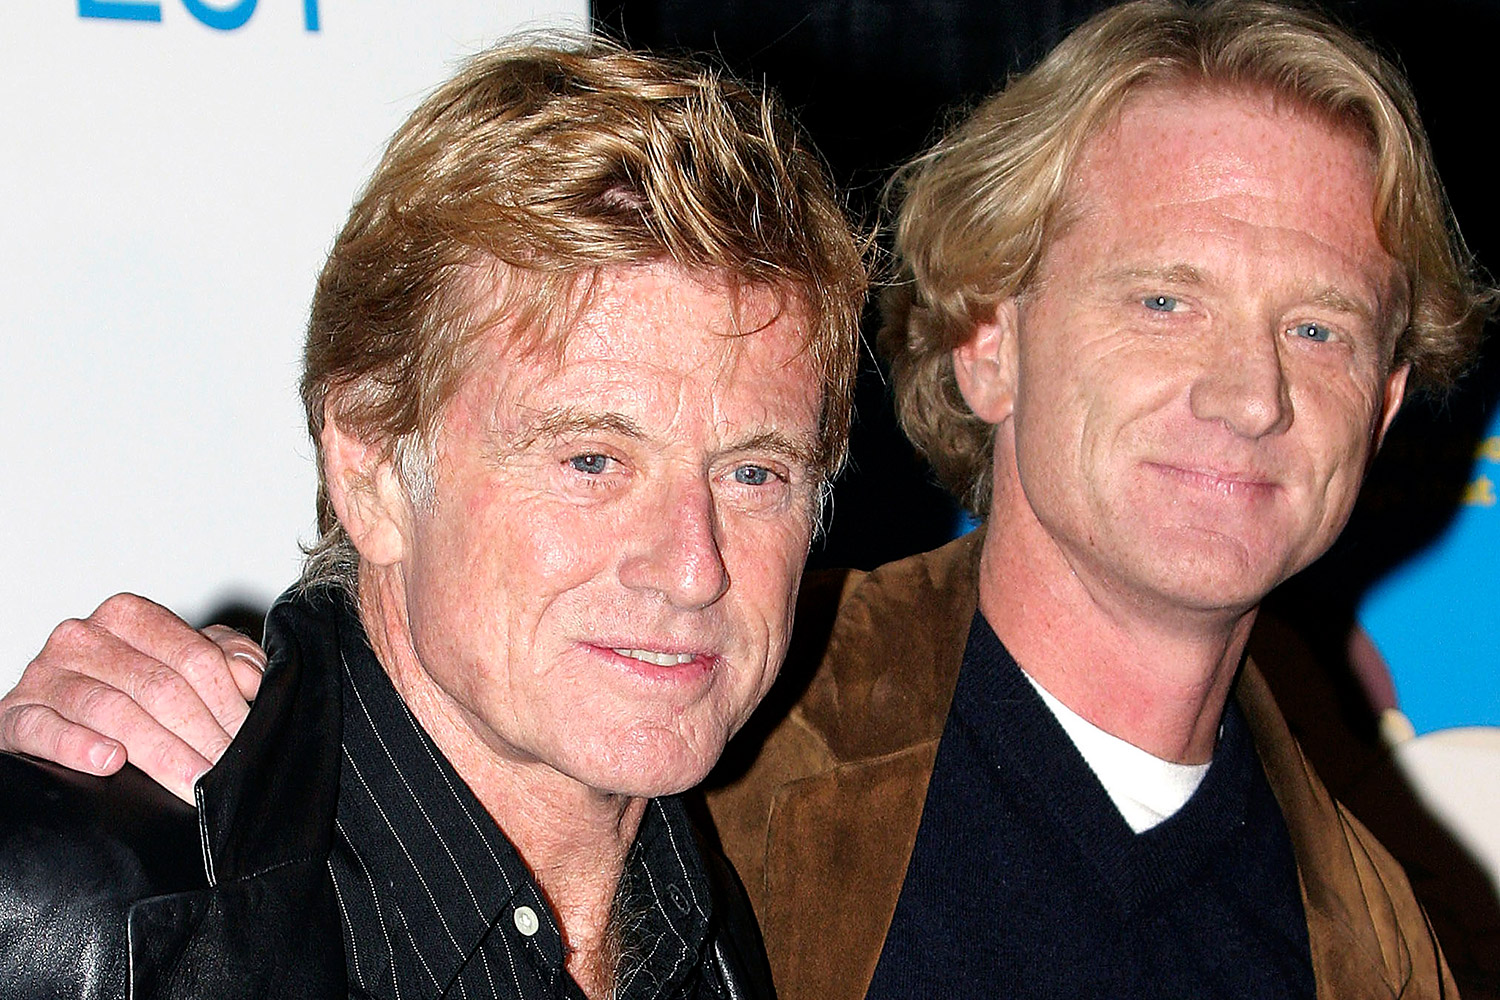 Robert Redford and his son, James